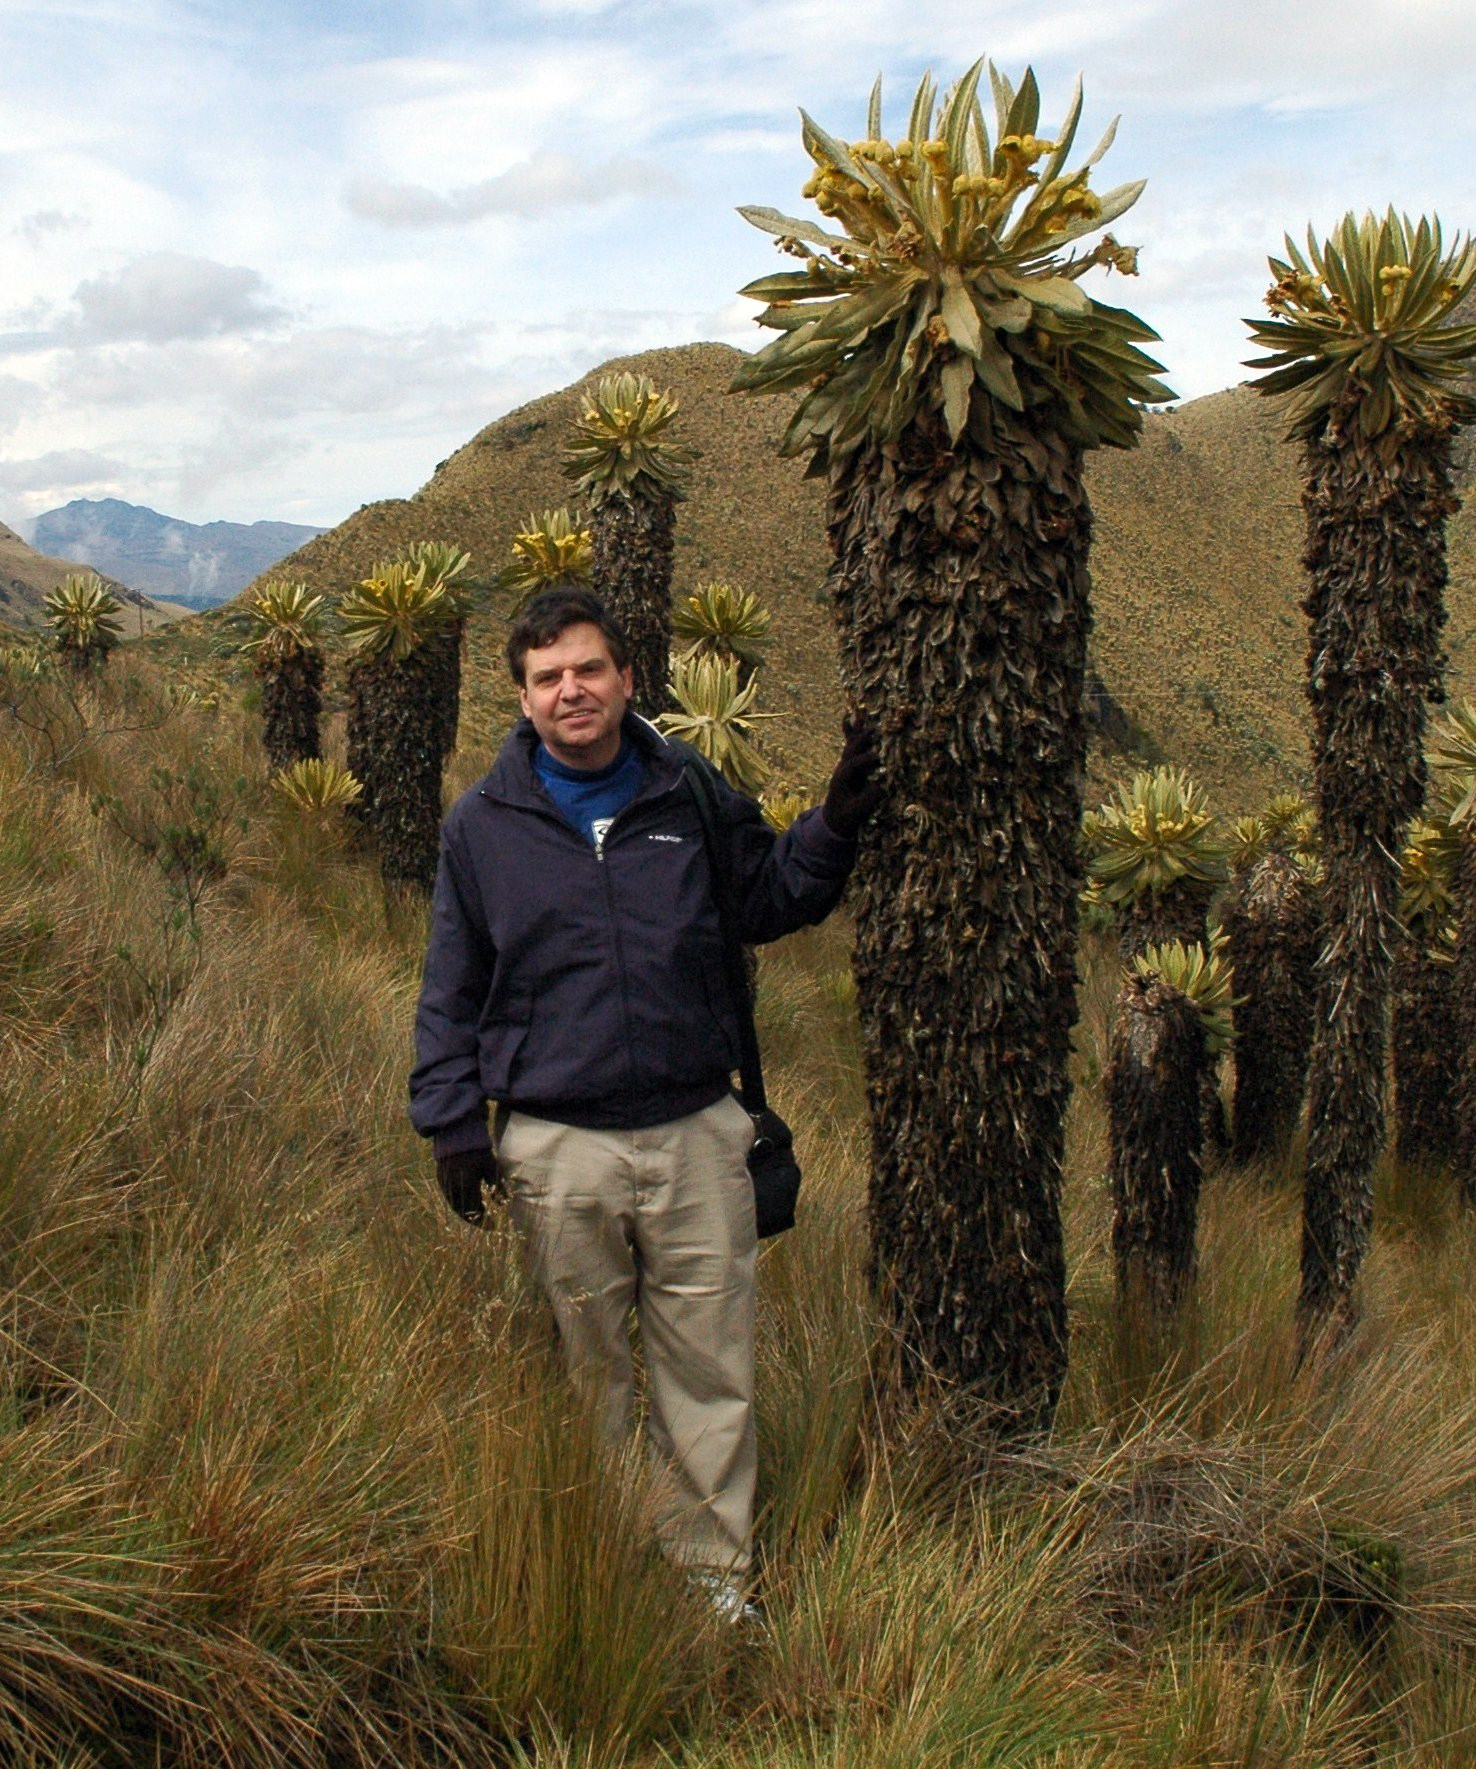 Adrian Ares in the Andes Mountains of Columbia